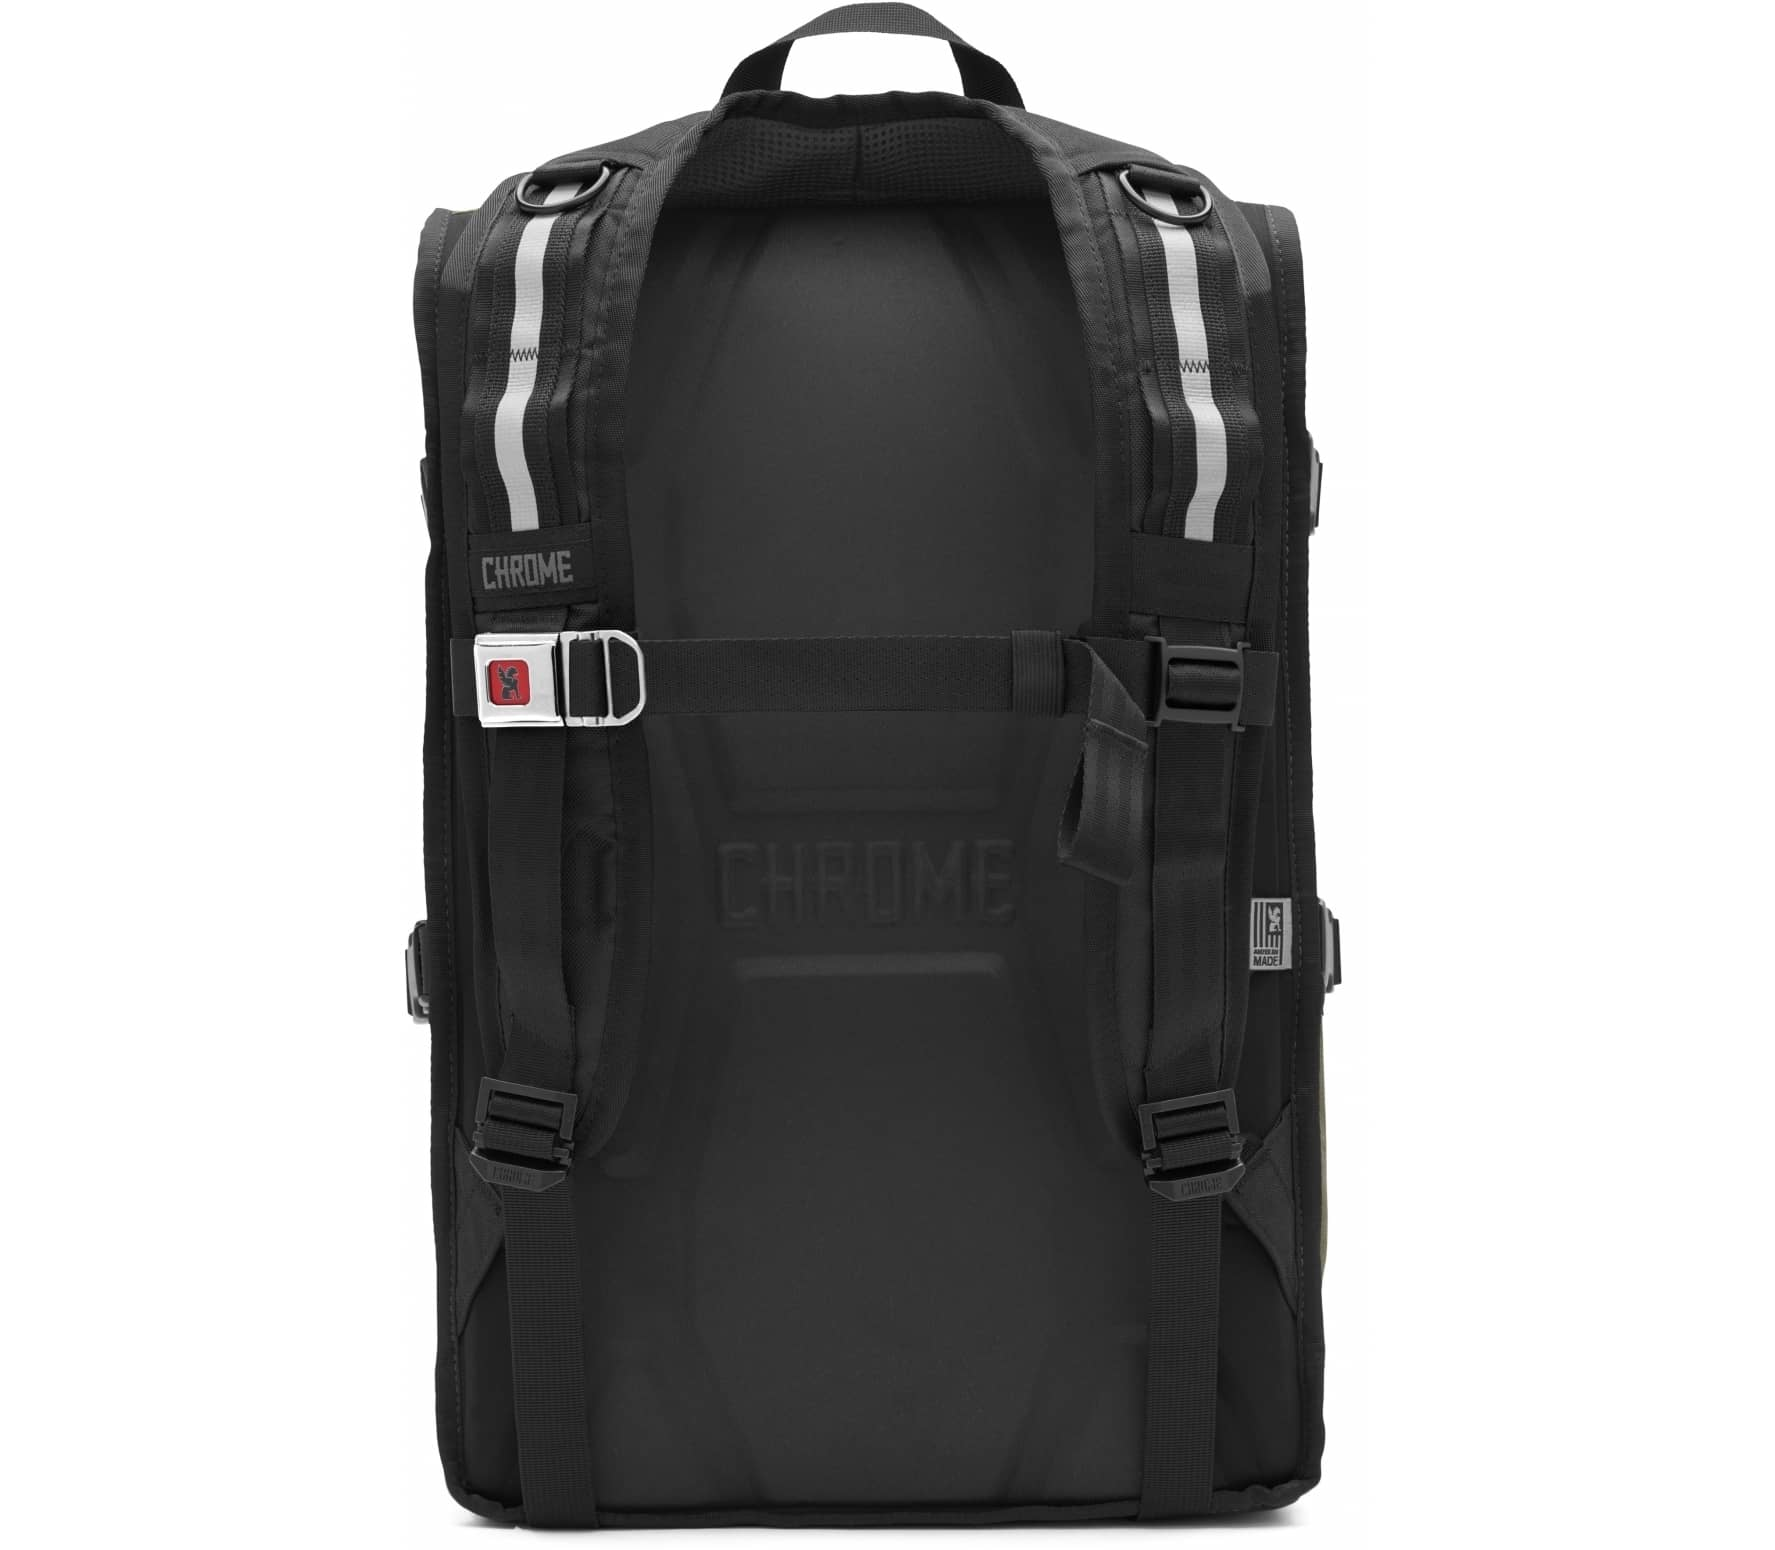 Chrome - Barrage Cargo 22 L daypack (black)